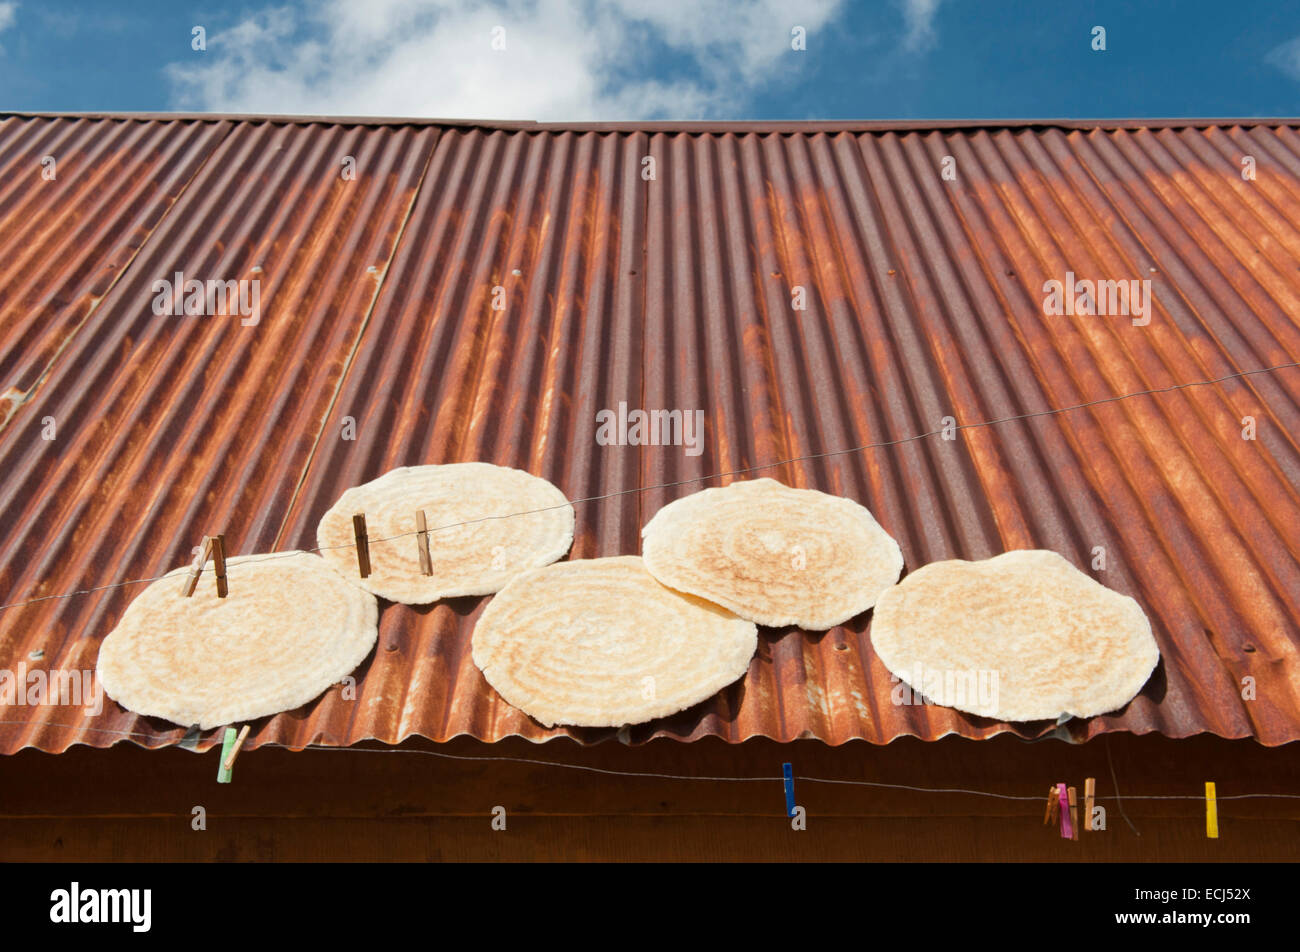 Cassave bread drying on roofs at the Maroon village of Lebi Doti, Lake Brokopondo, Suriname - Stock Image